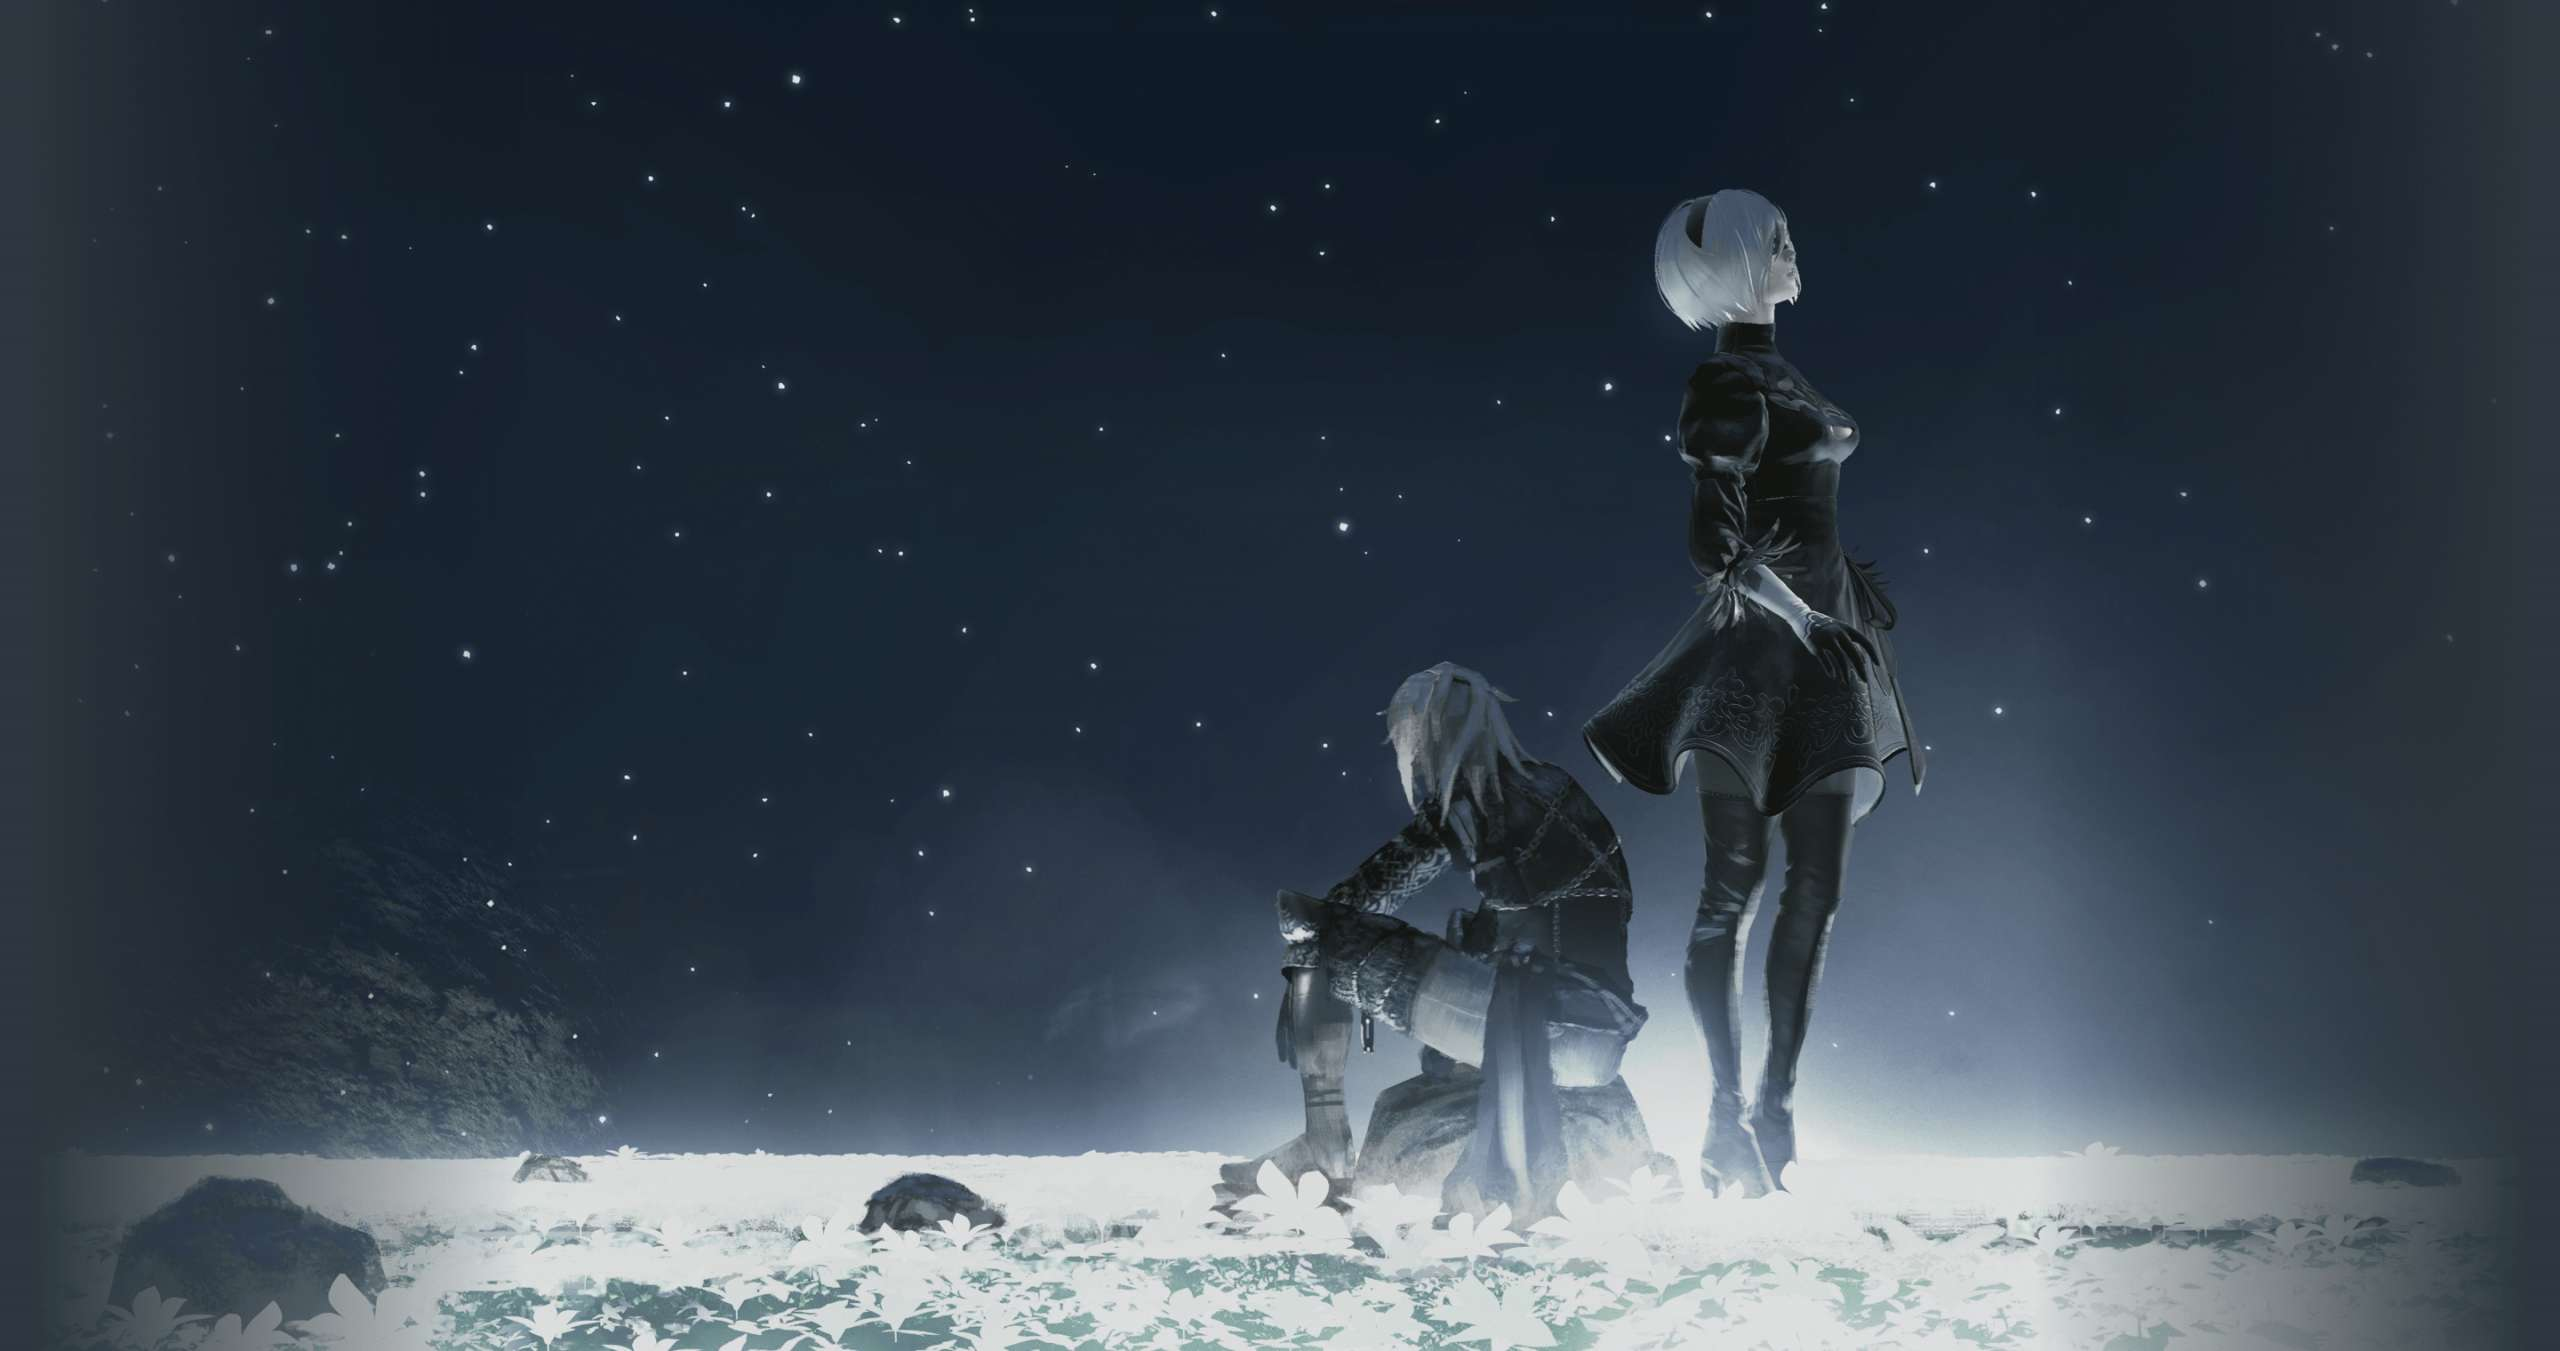 Square Enix Announces NieR: Theatrical Orchestra 12020 10th Anniversary Concerts For 2020